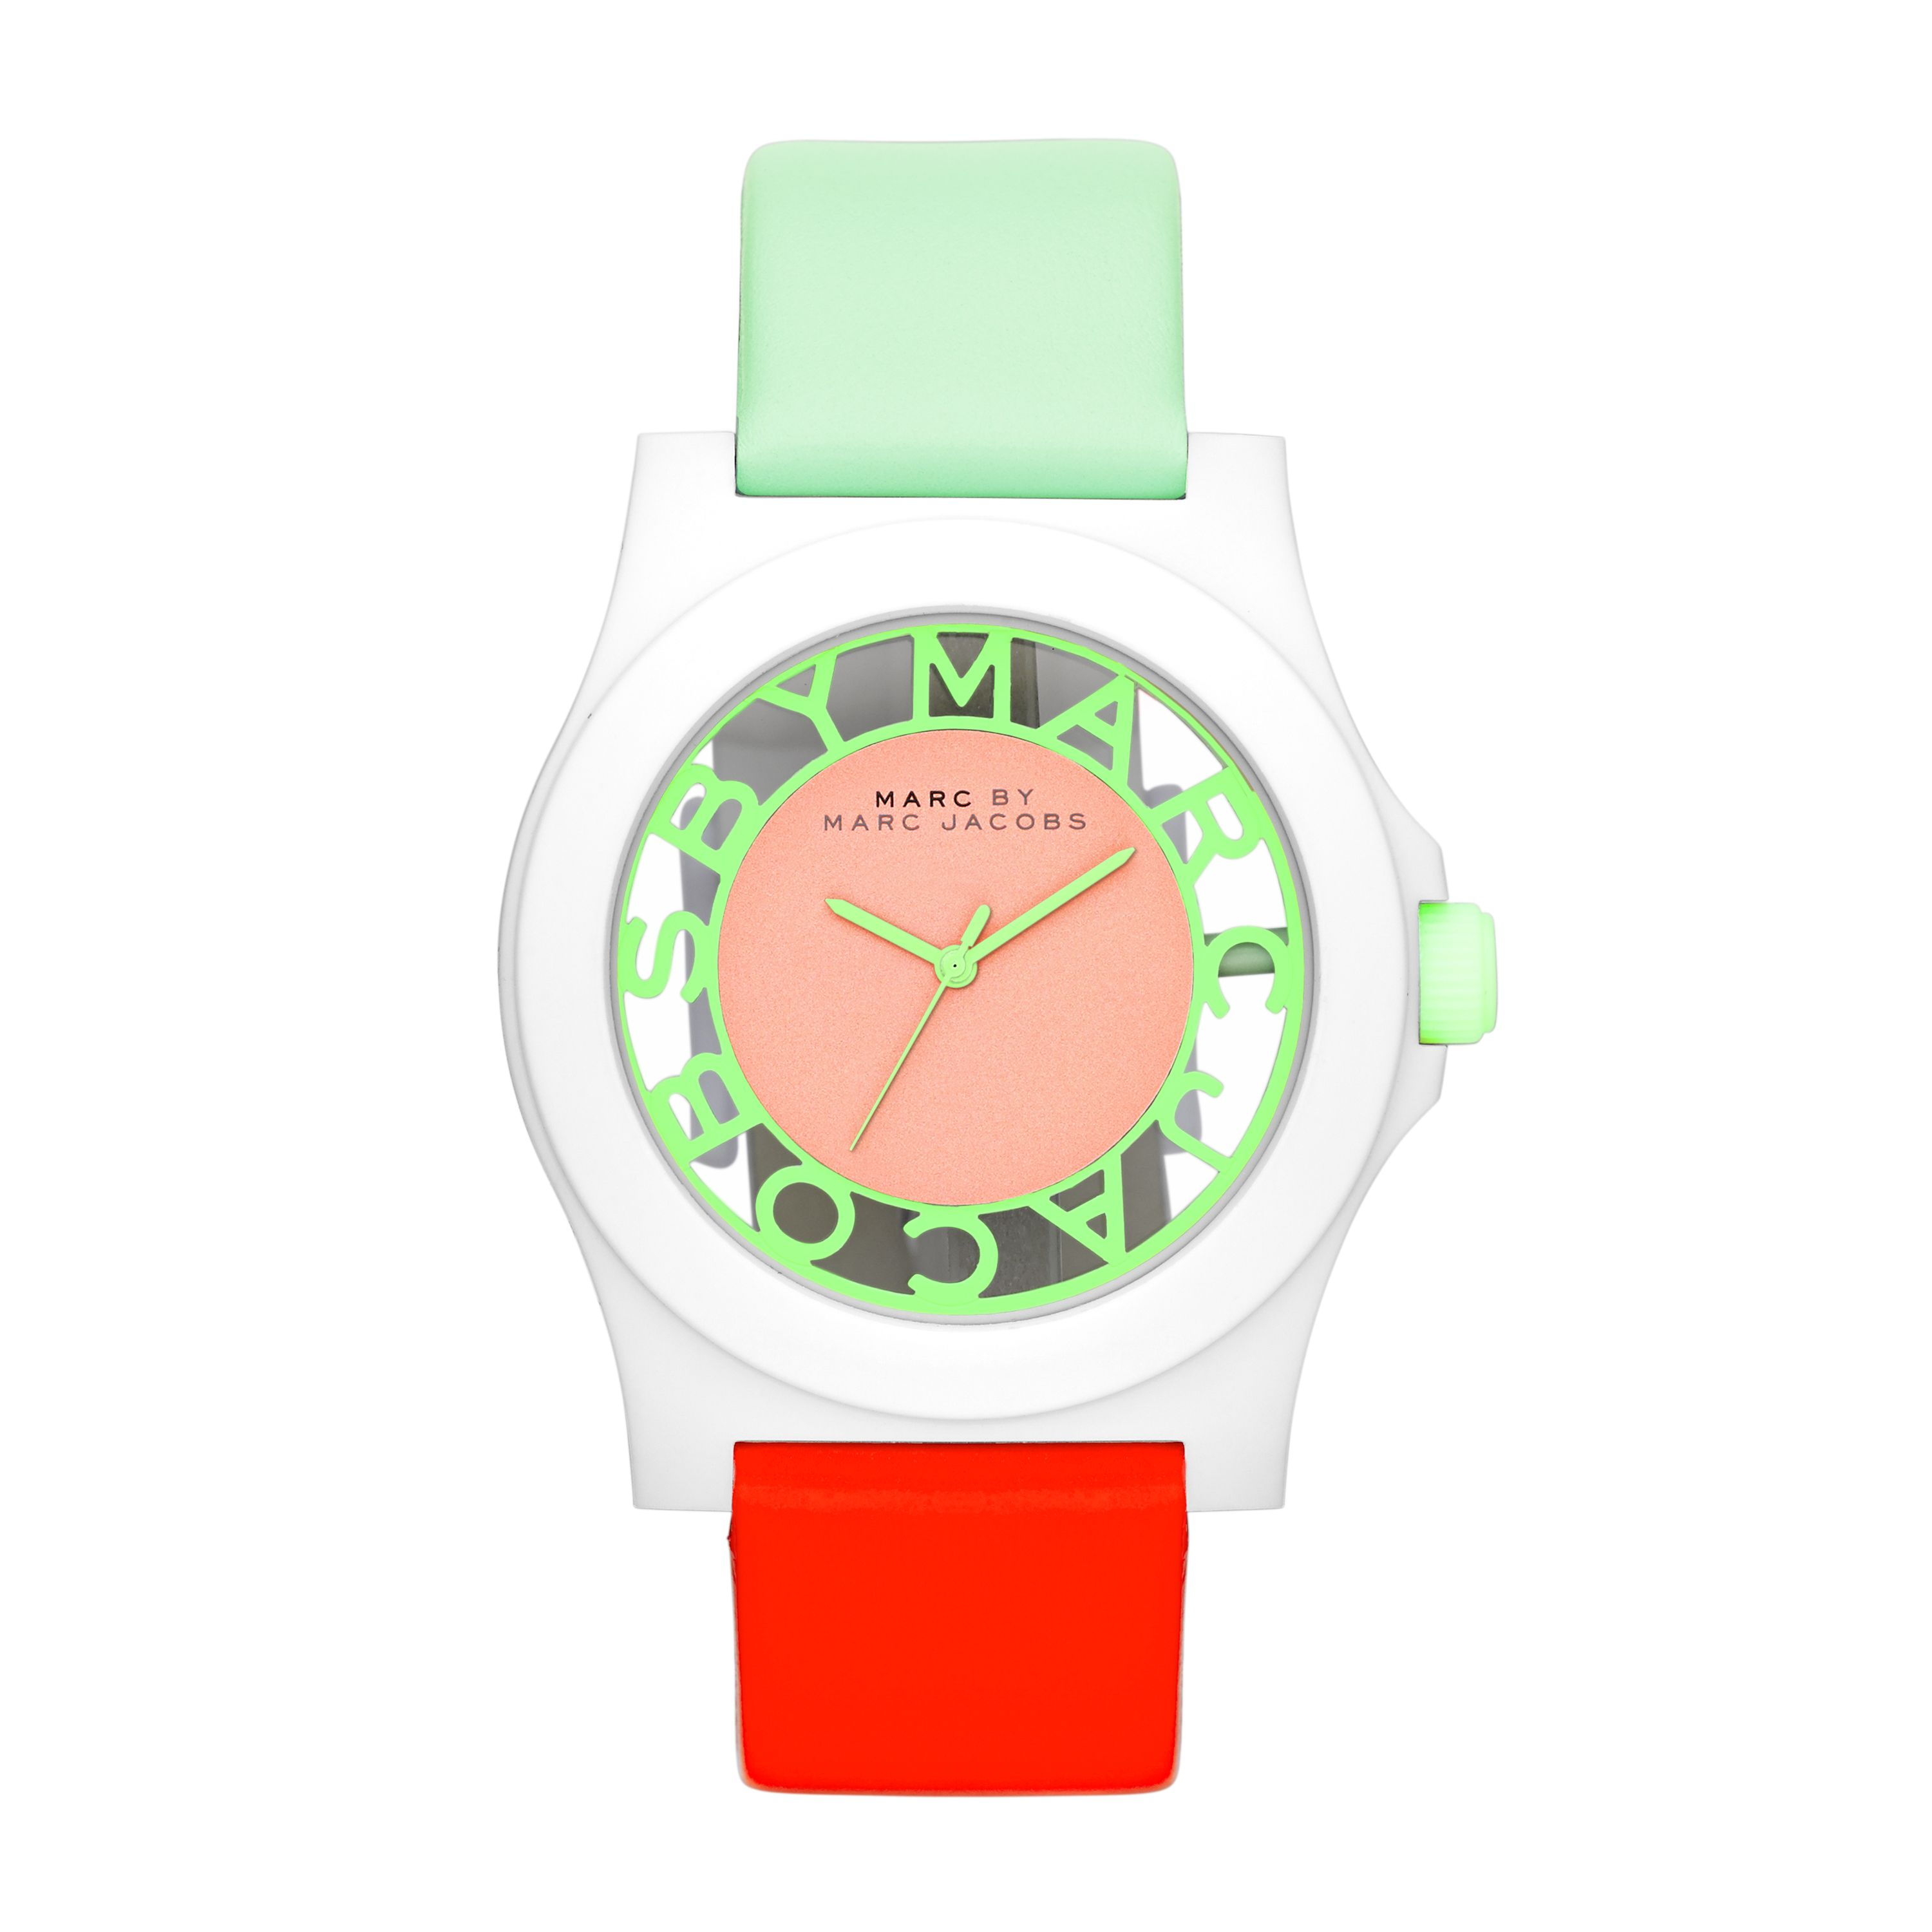 MBM4020 Henry ladies fluoro coral mint watch